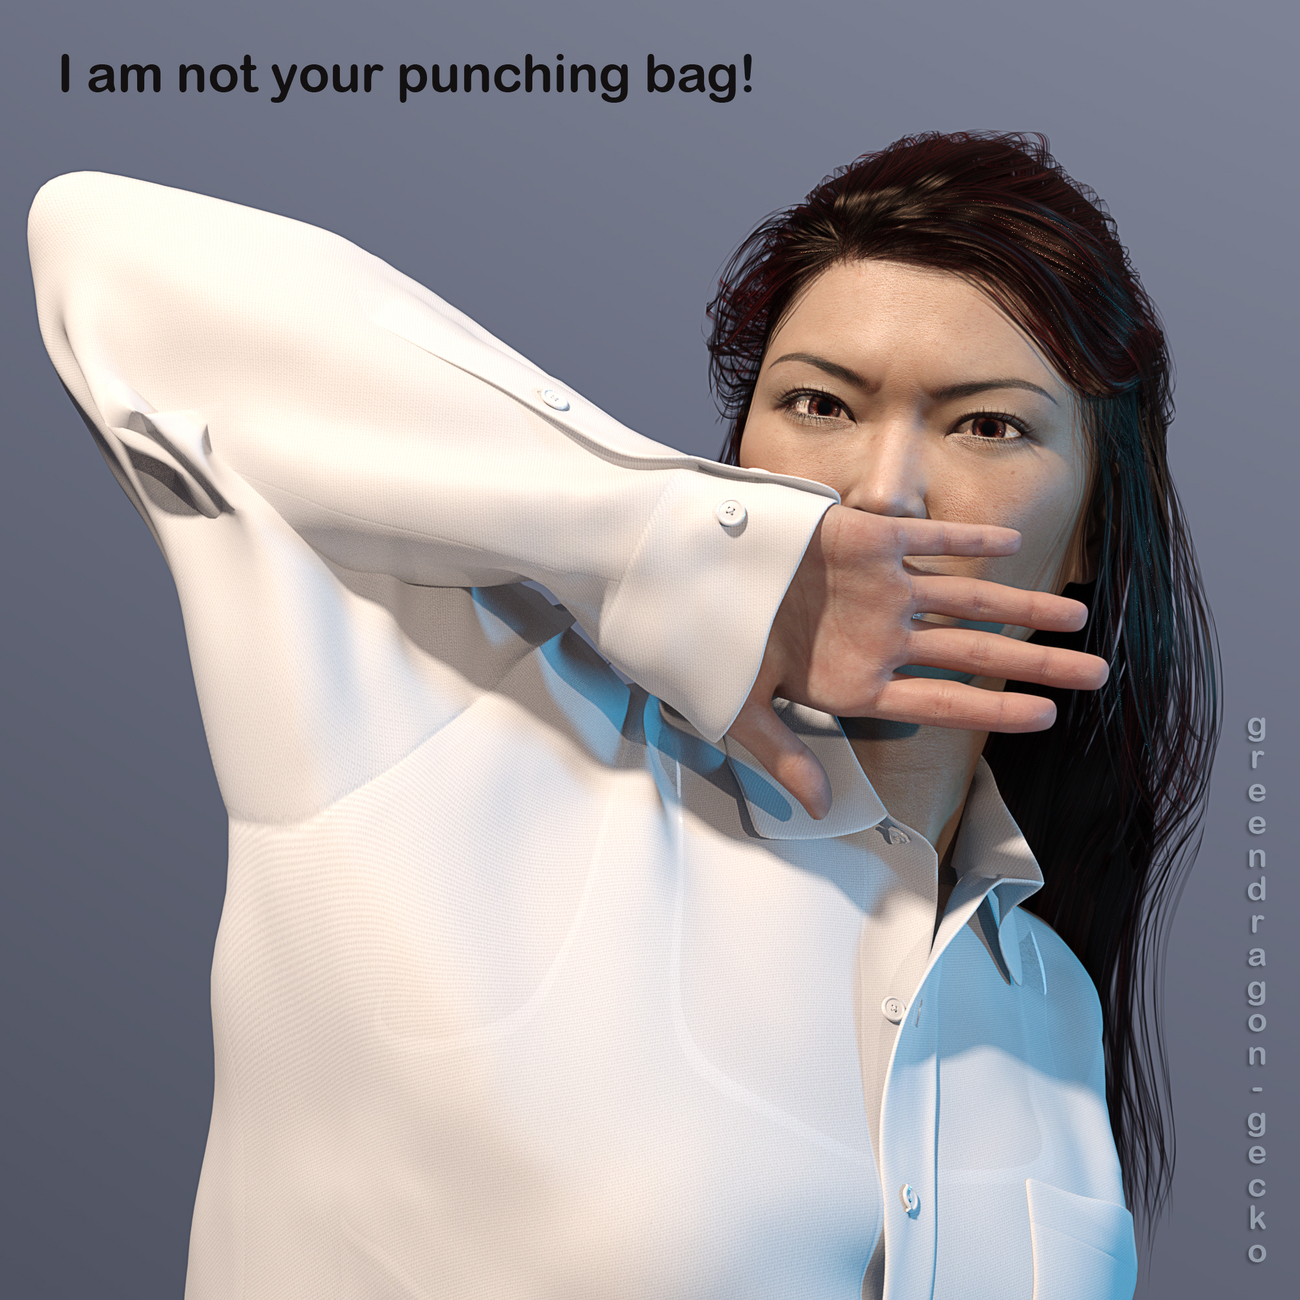 I am not your punching bag by Salerina